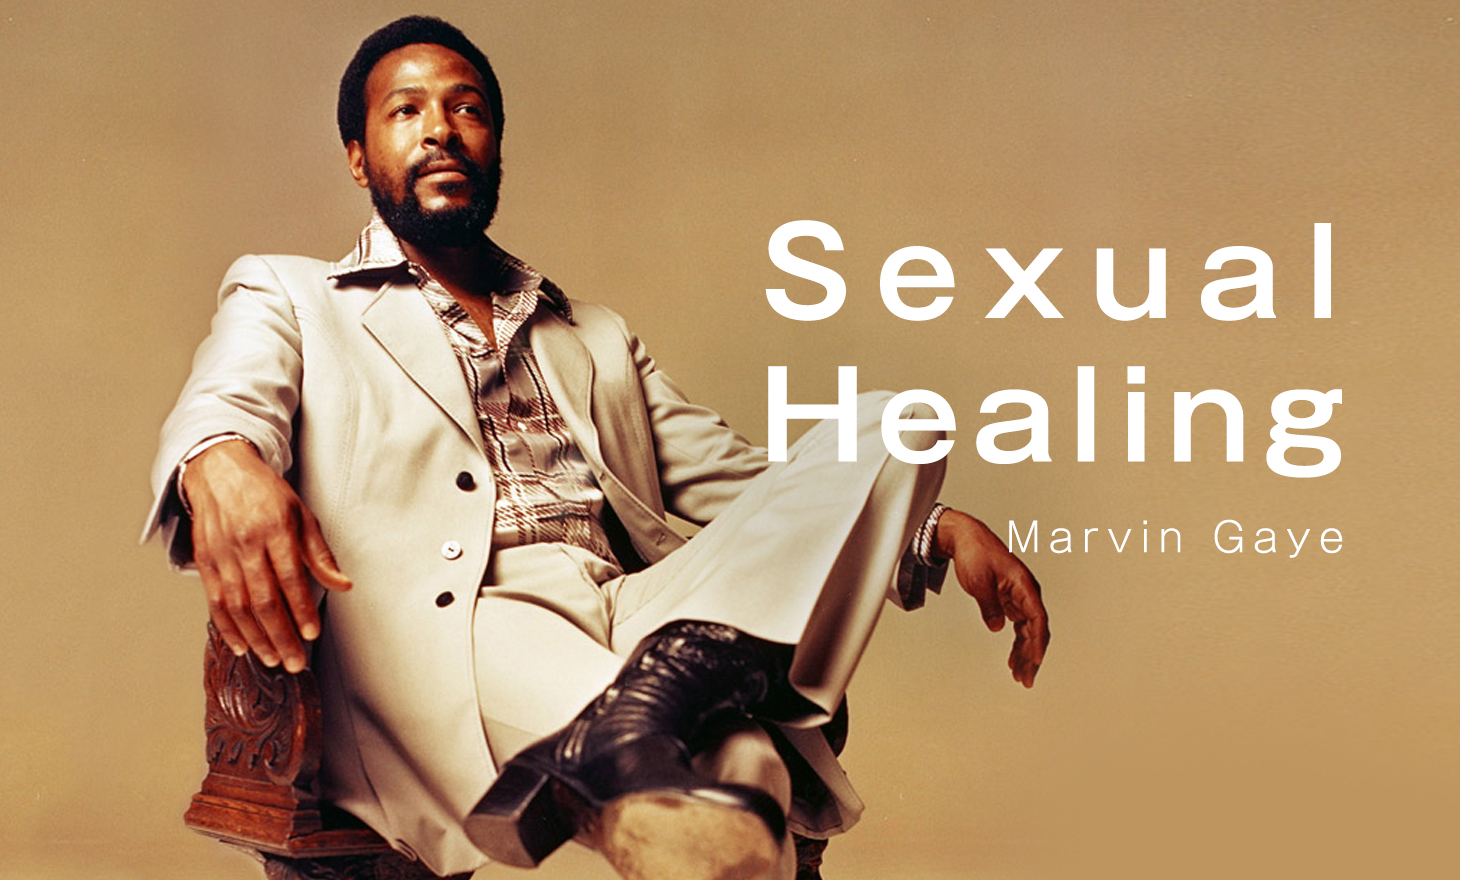 from Kayson marvin gaye sexual healin lyrics